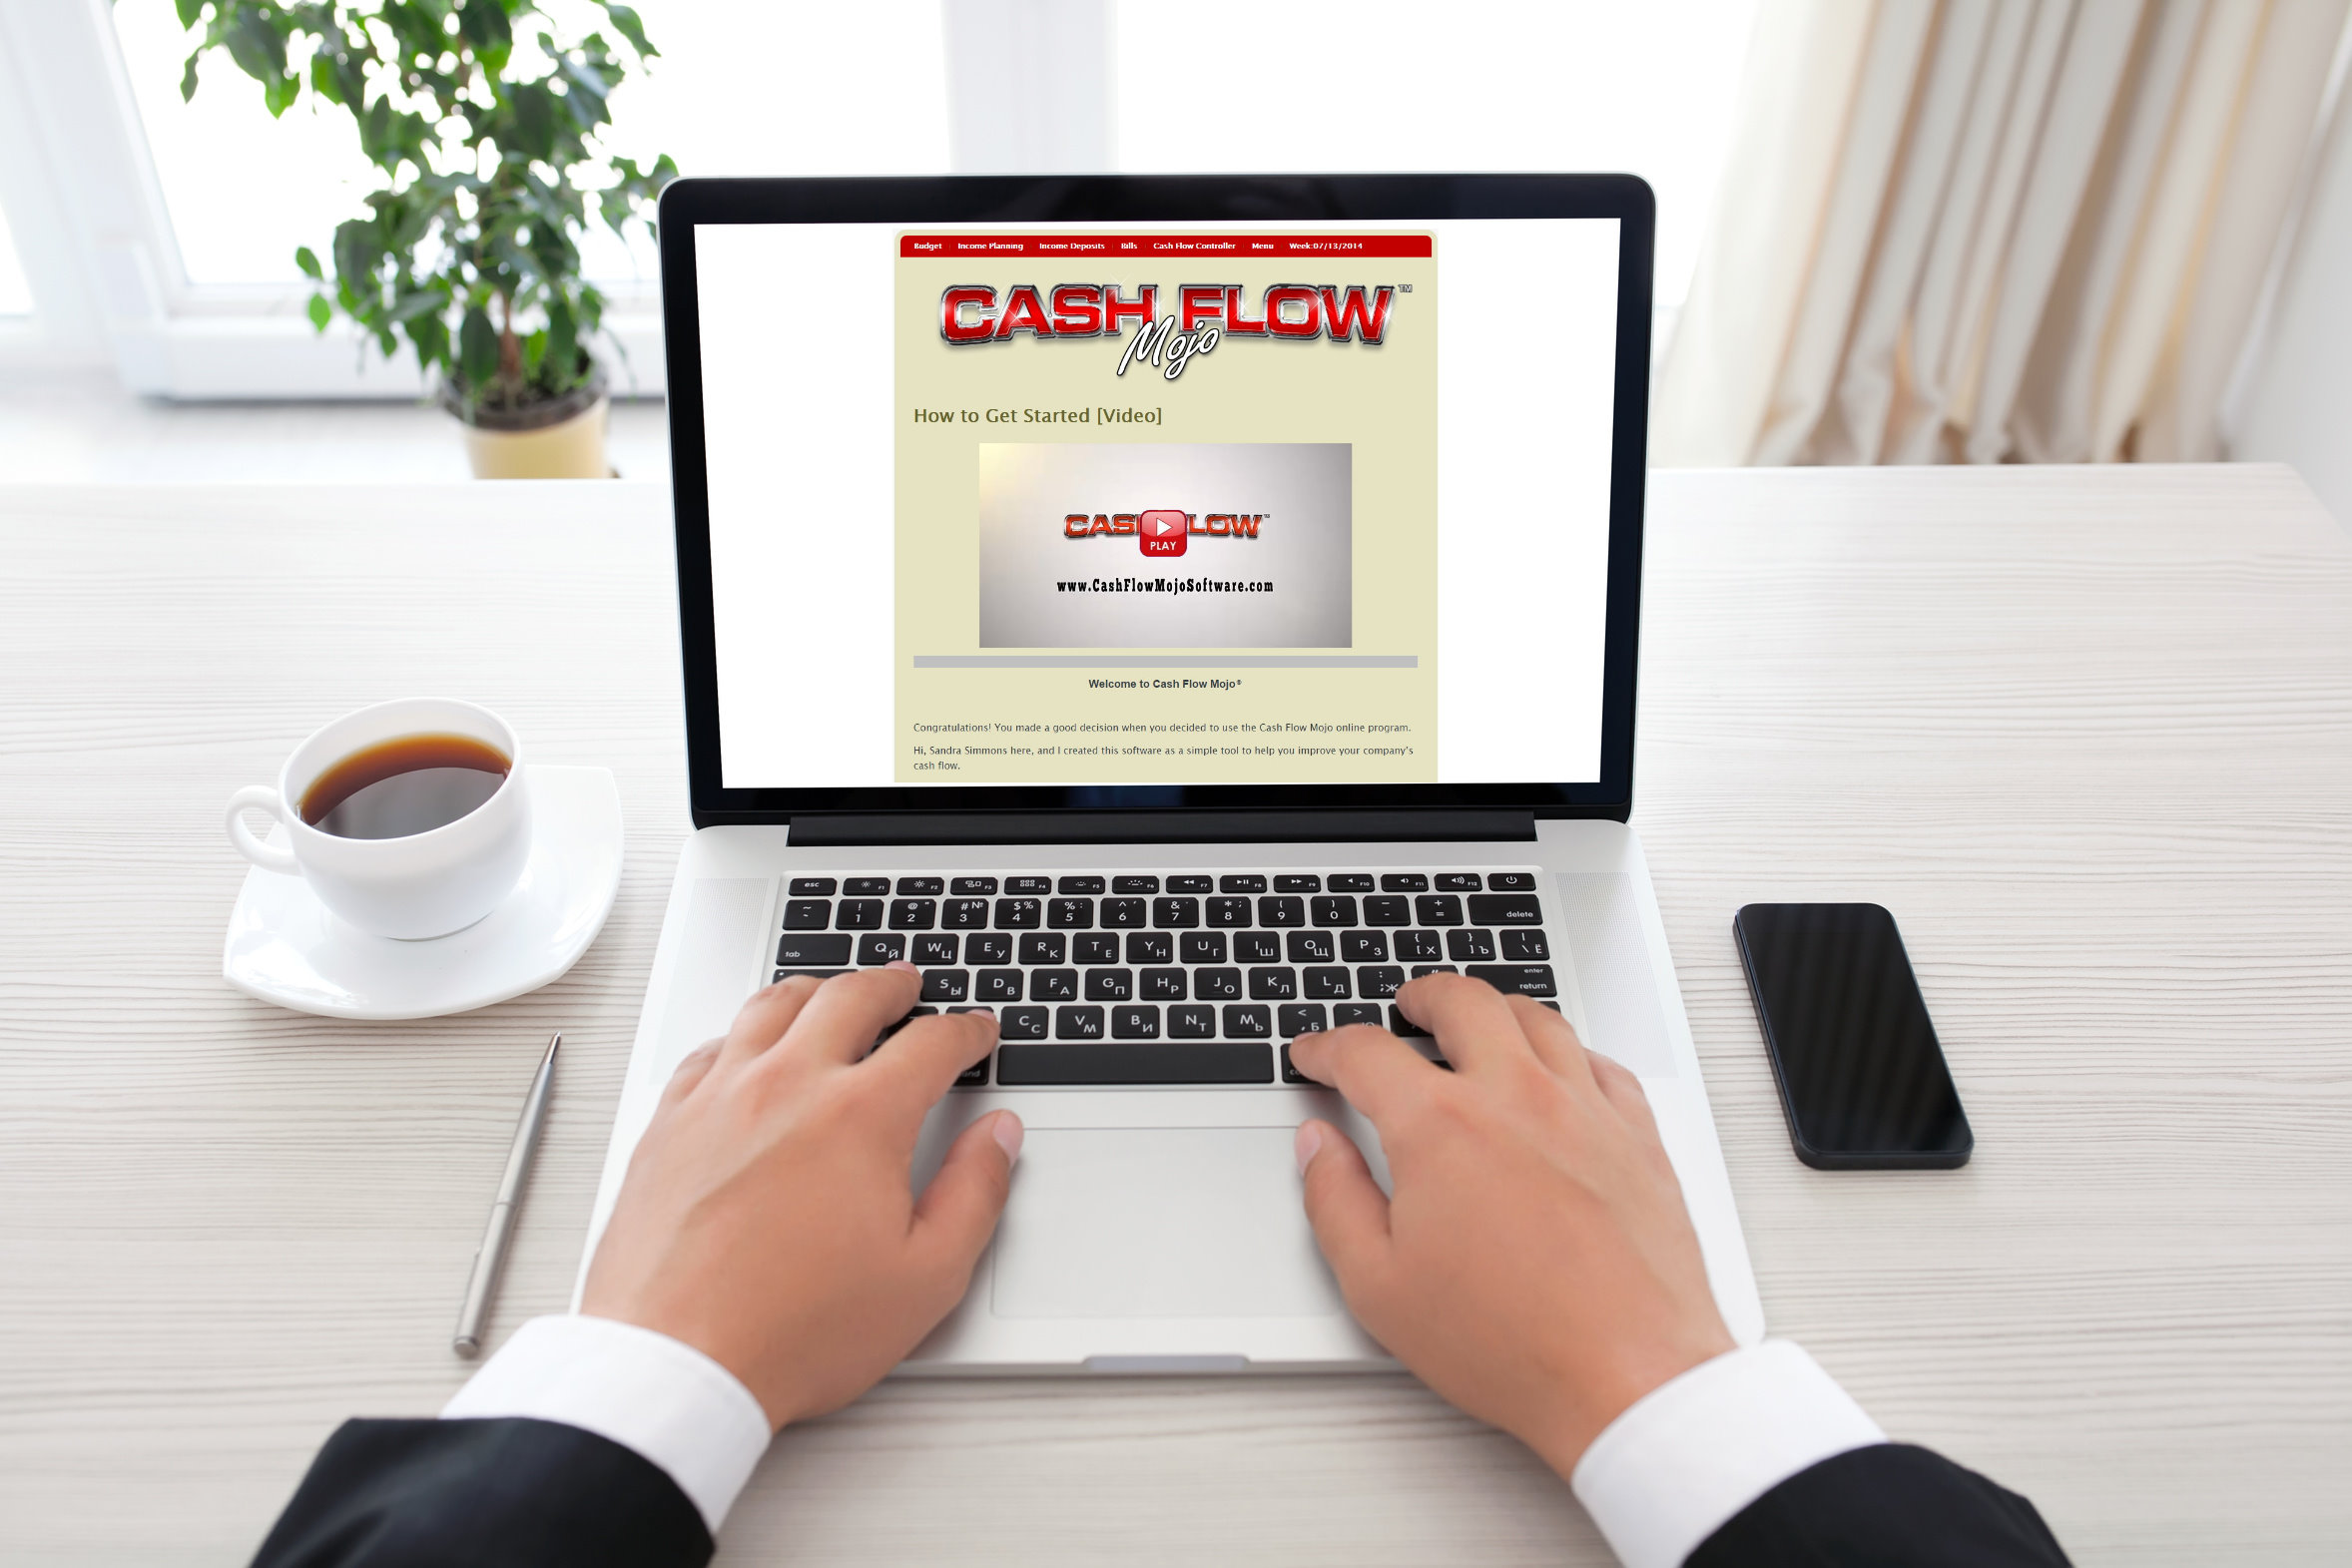 computer with cash flow mojo software onscreen